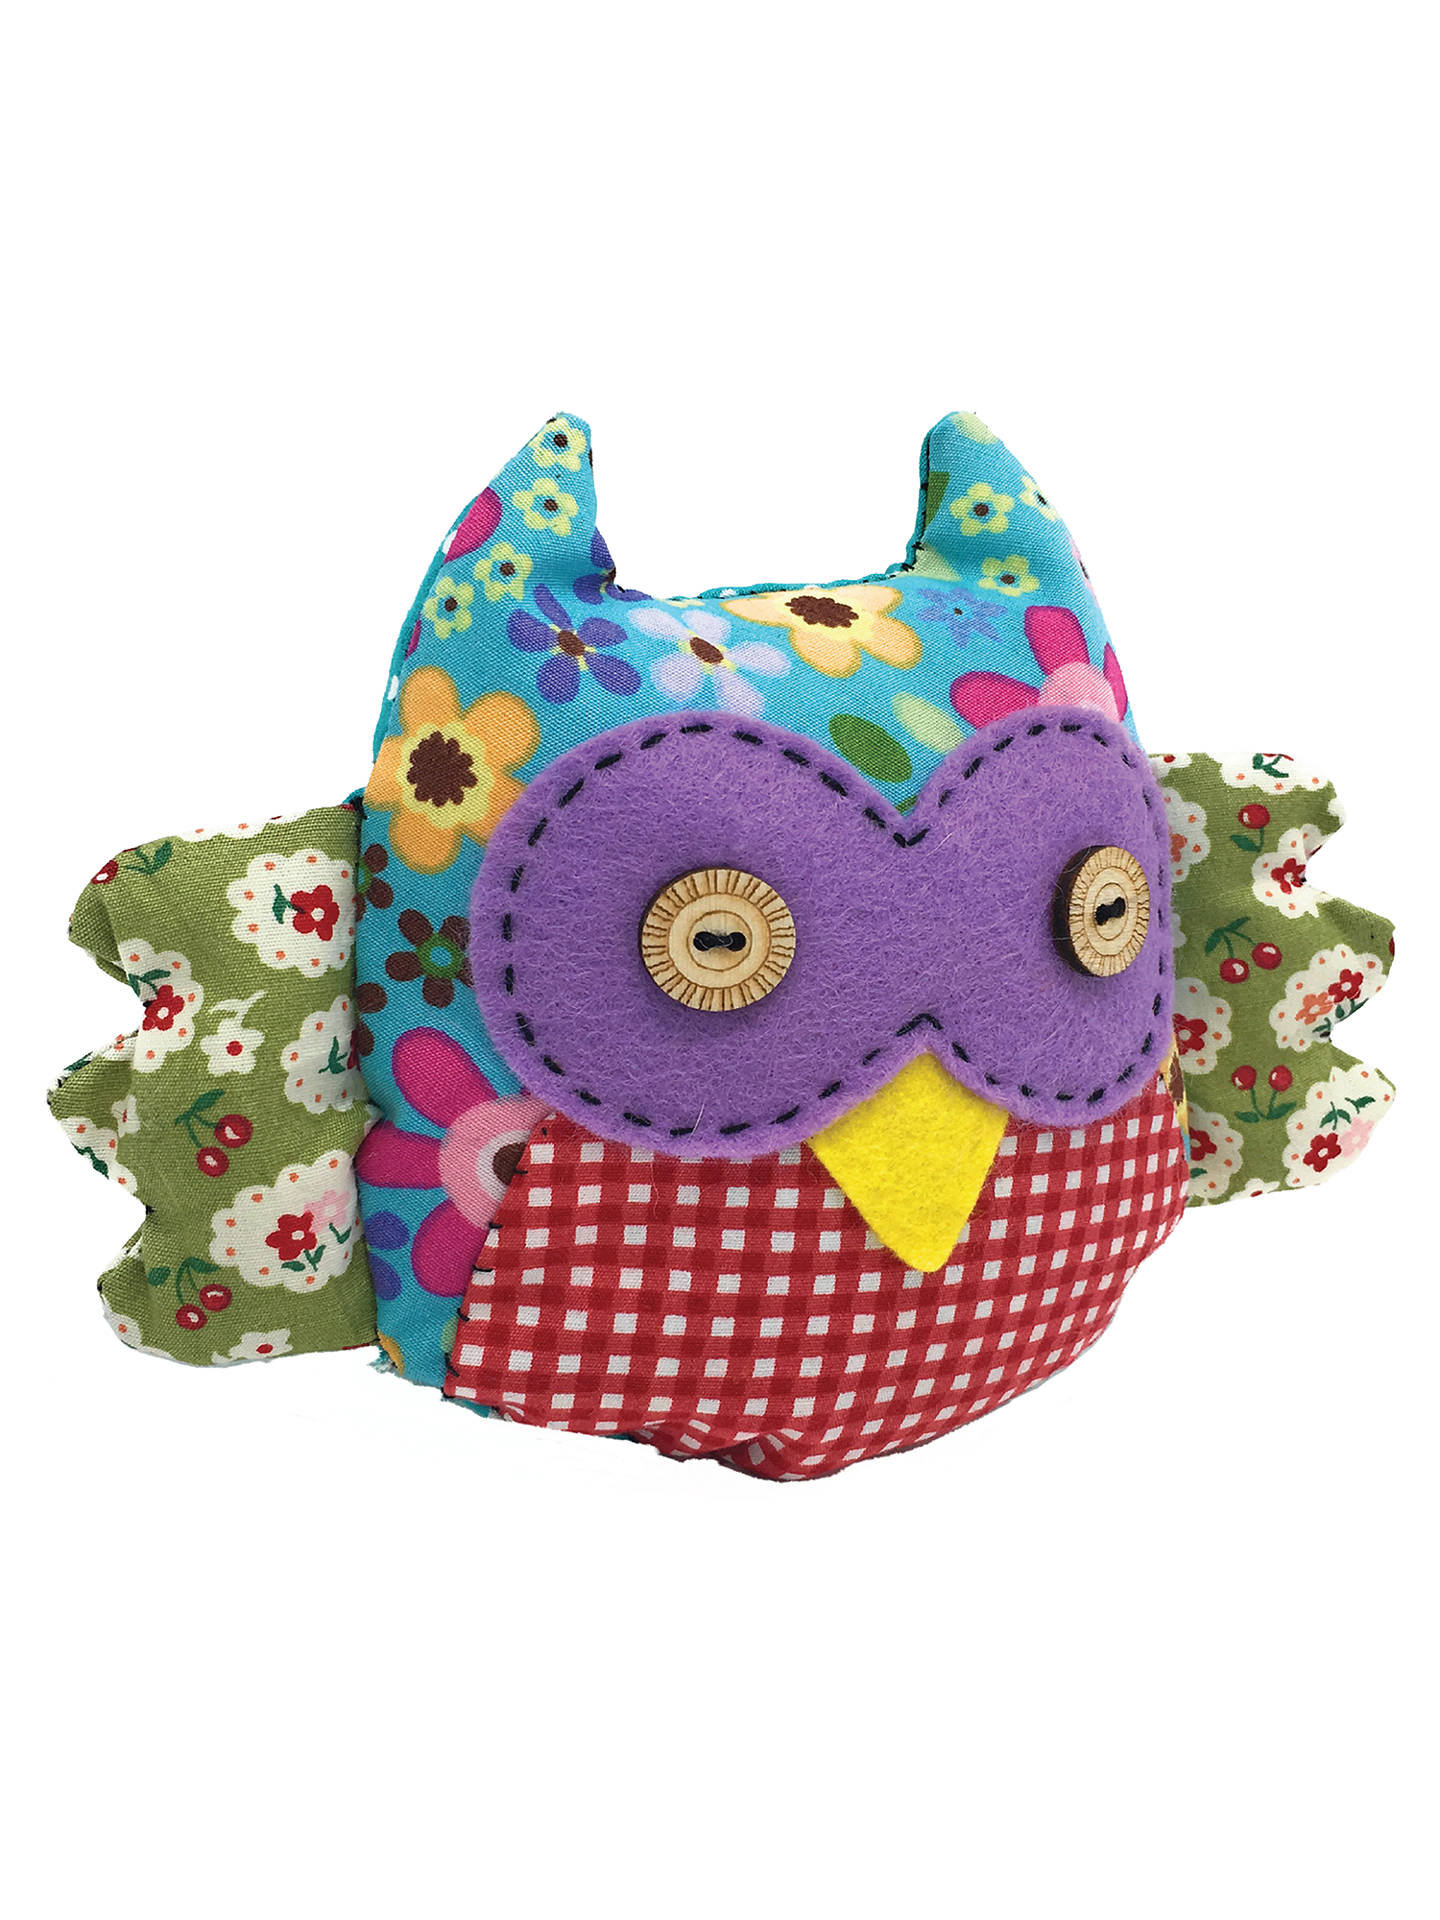 BuyThe Crafty Kit Company Sew Your Own Patchwork Owl Kit Online at johnlewis.com